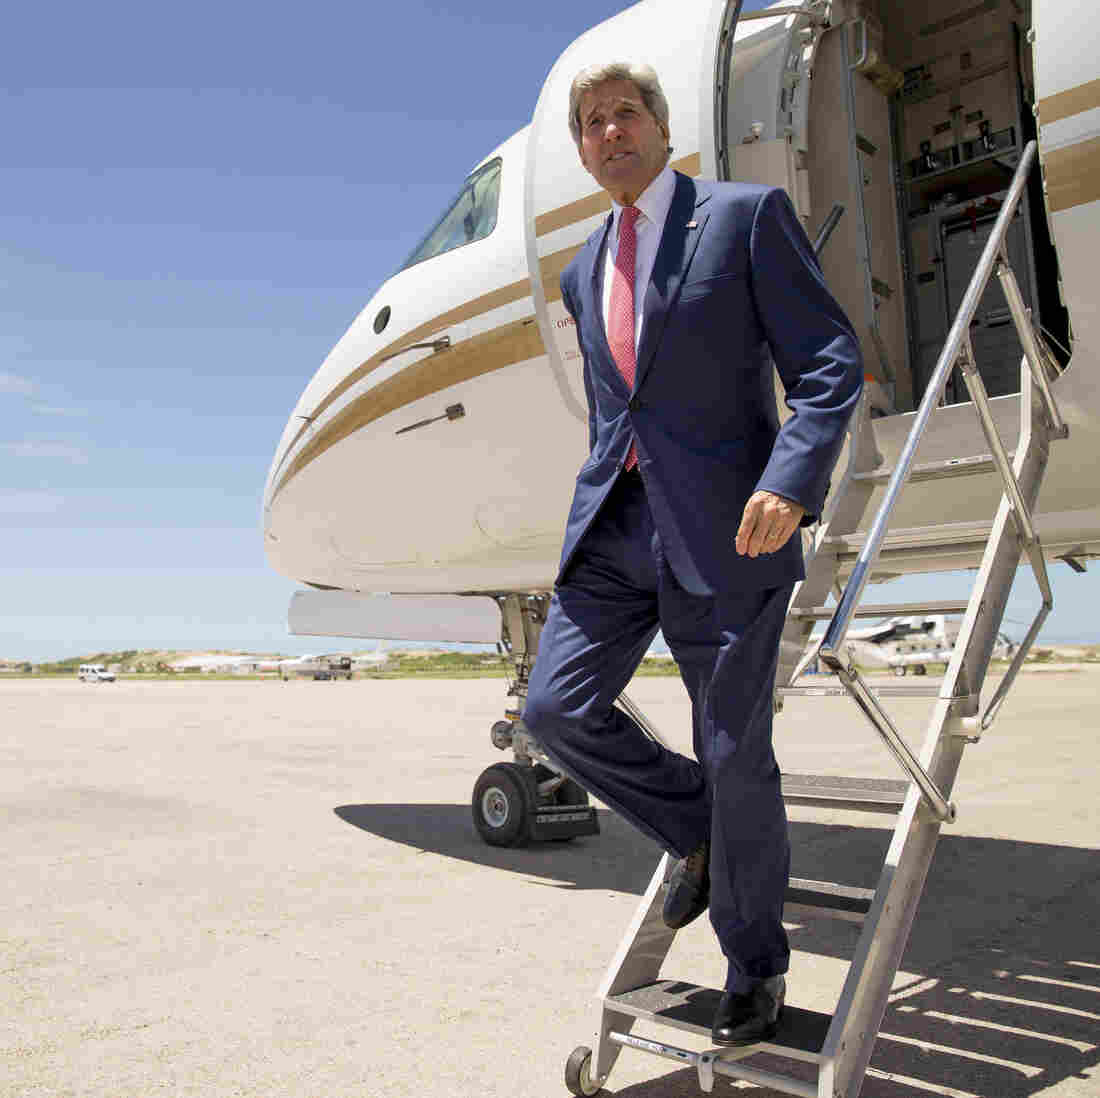 A First: John Kerry Makes Unannounced Visit To Somalia